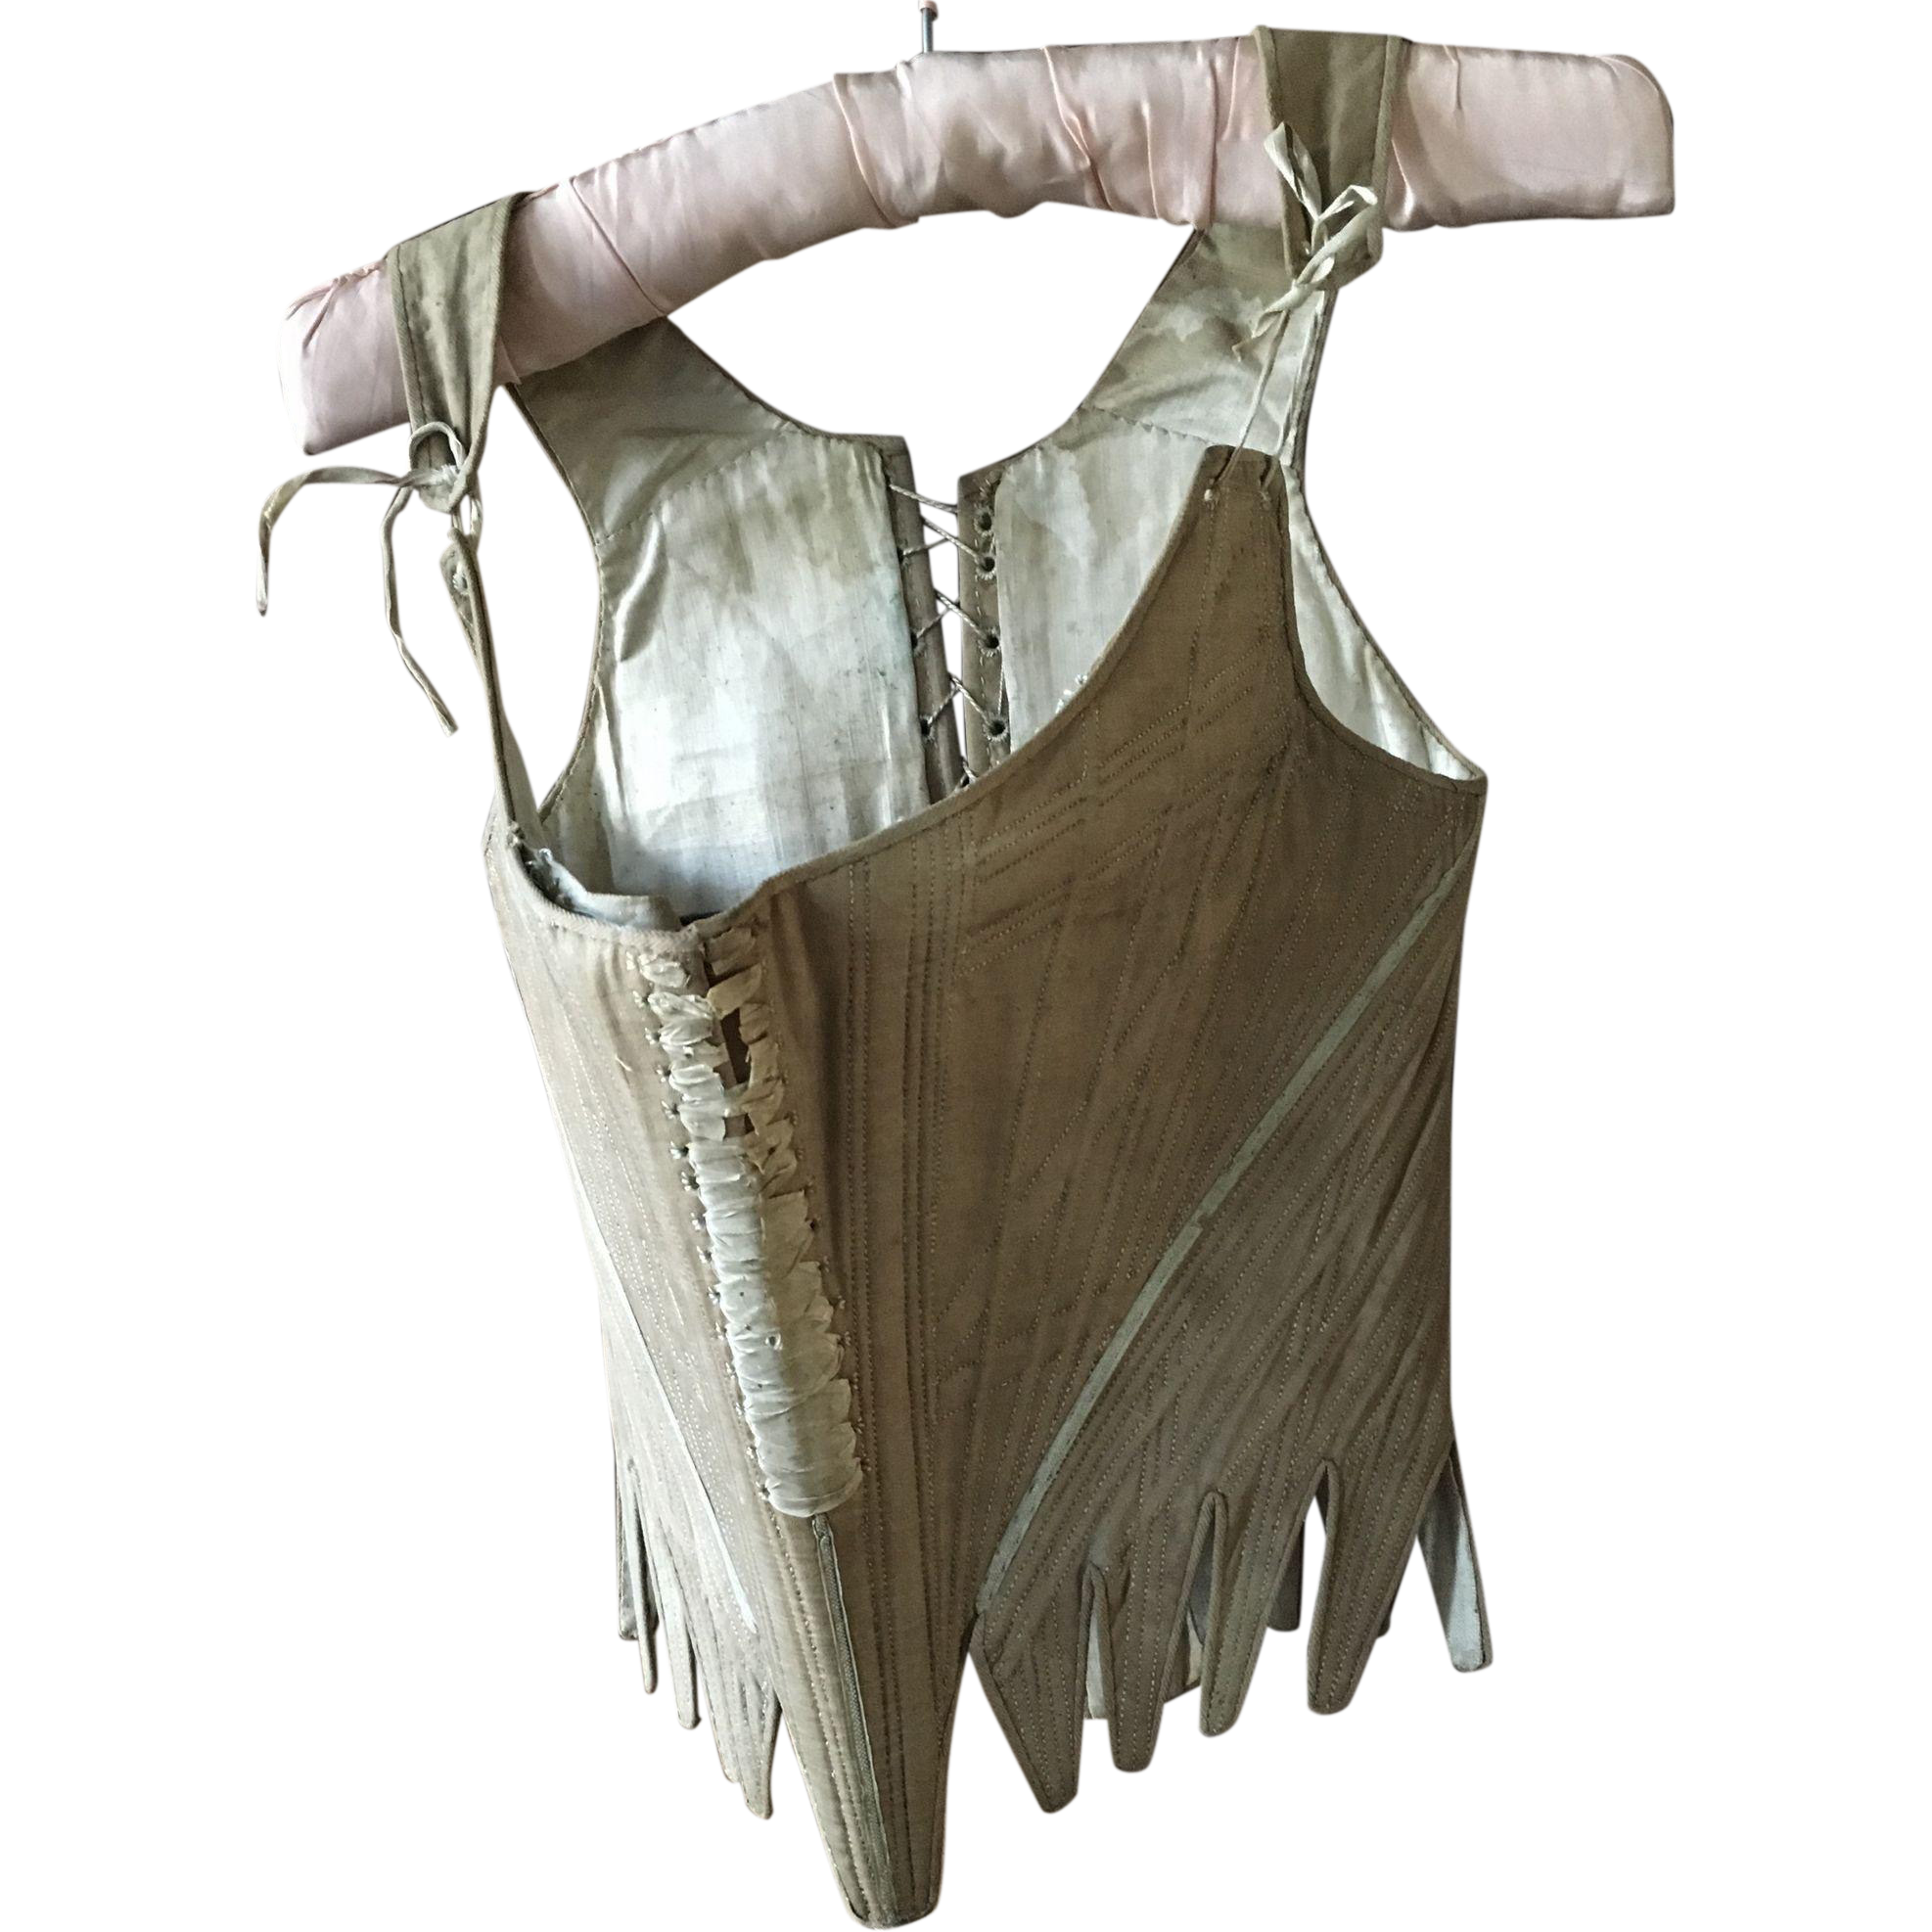 Very rare set of 18th century Stays/Corset in Cotton and Linen